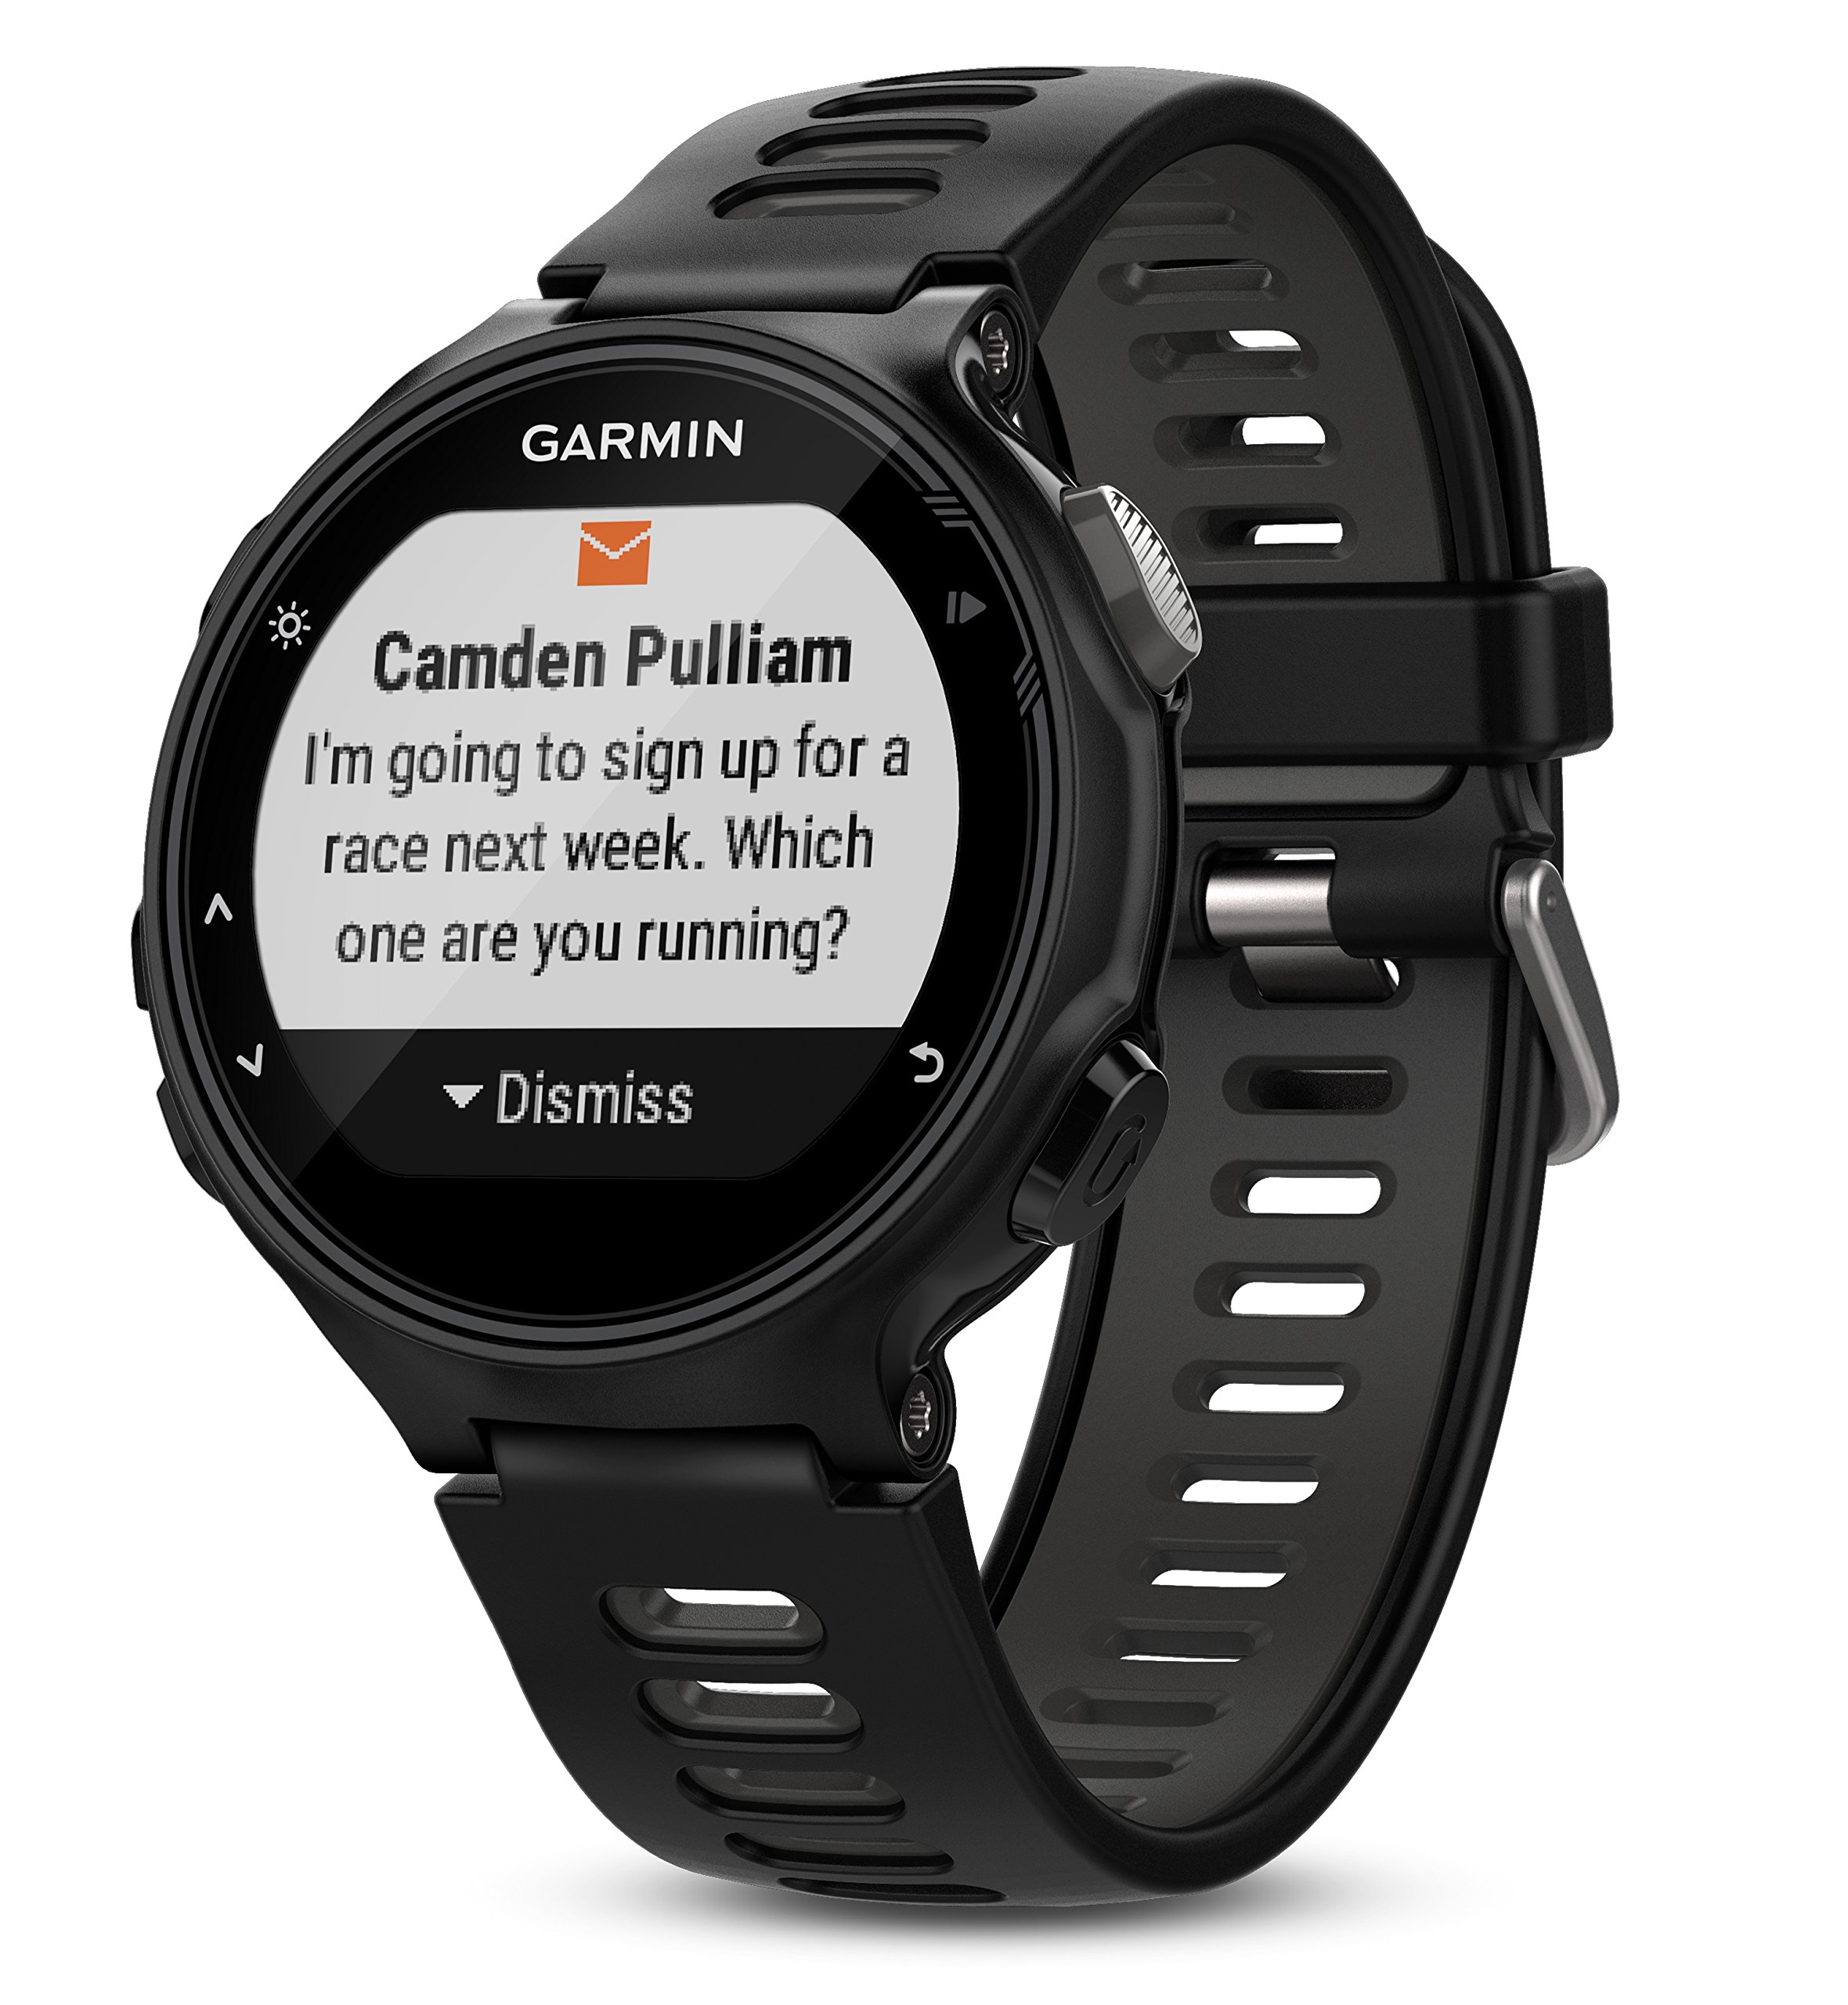 Garmin Forerunner 735XT (Black/Gray, Run-Bundle) Power Bundle   Includes HRM-Run Chest Strap, HD Glass Screen Protectors (x2) & PlayBetter Portable Charger   Multisport GPS Running Watch by PlayBetter (Image #9)